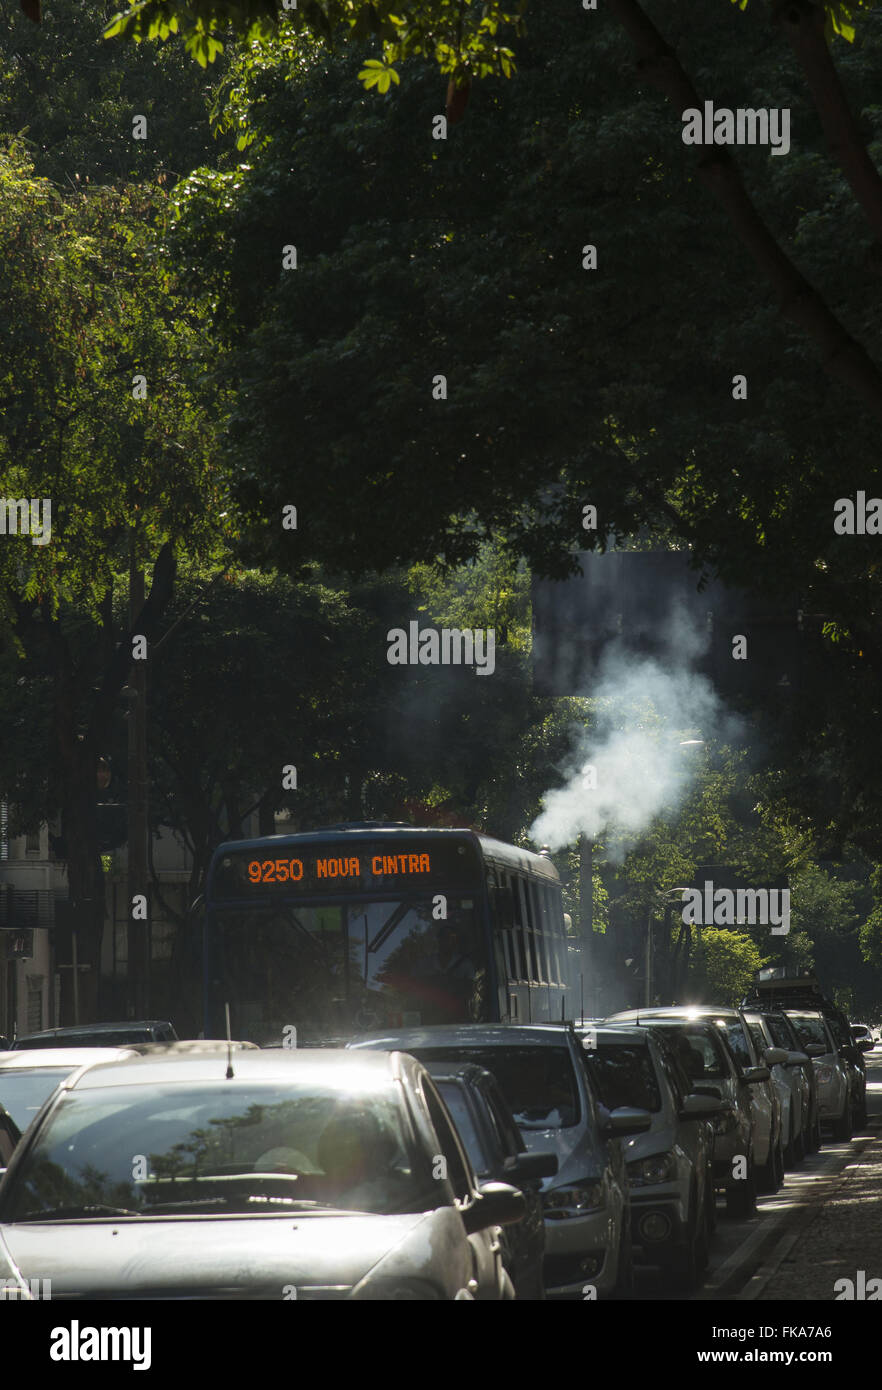 Bus fumes polluting the air at Avenida Christopher Columbus in the Savassi district - Stock Image